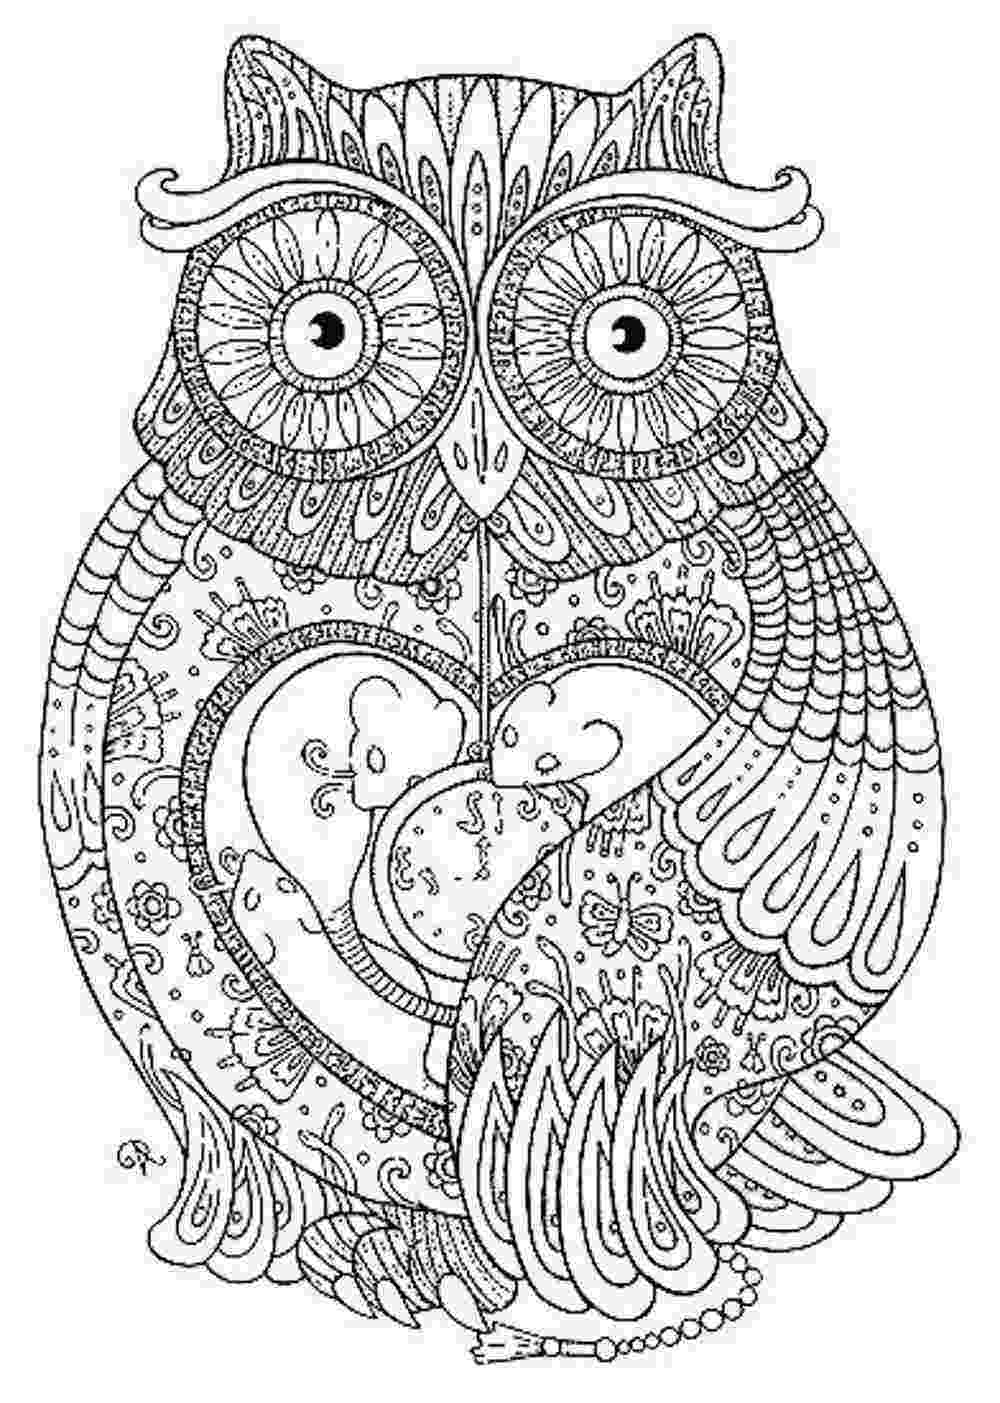 coloring book for grown ups printable coloring book for grown ups pesquisa do google printable book coloring for grown ups